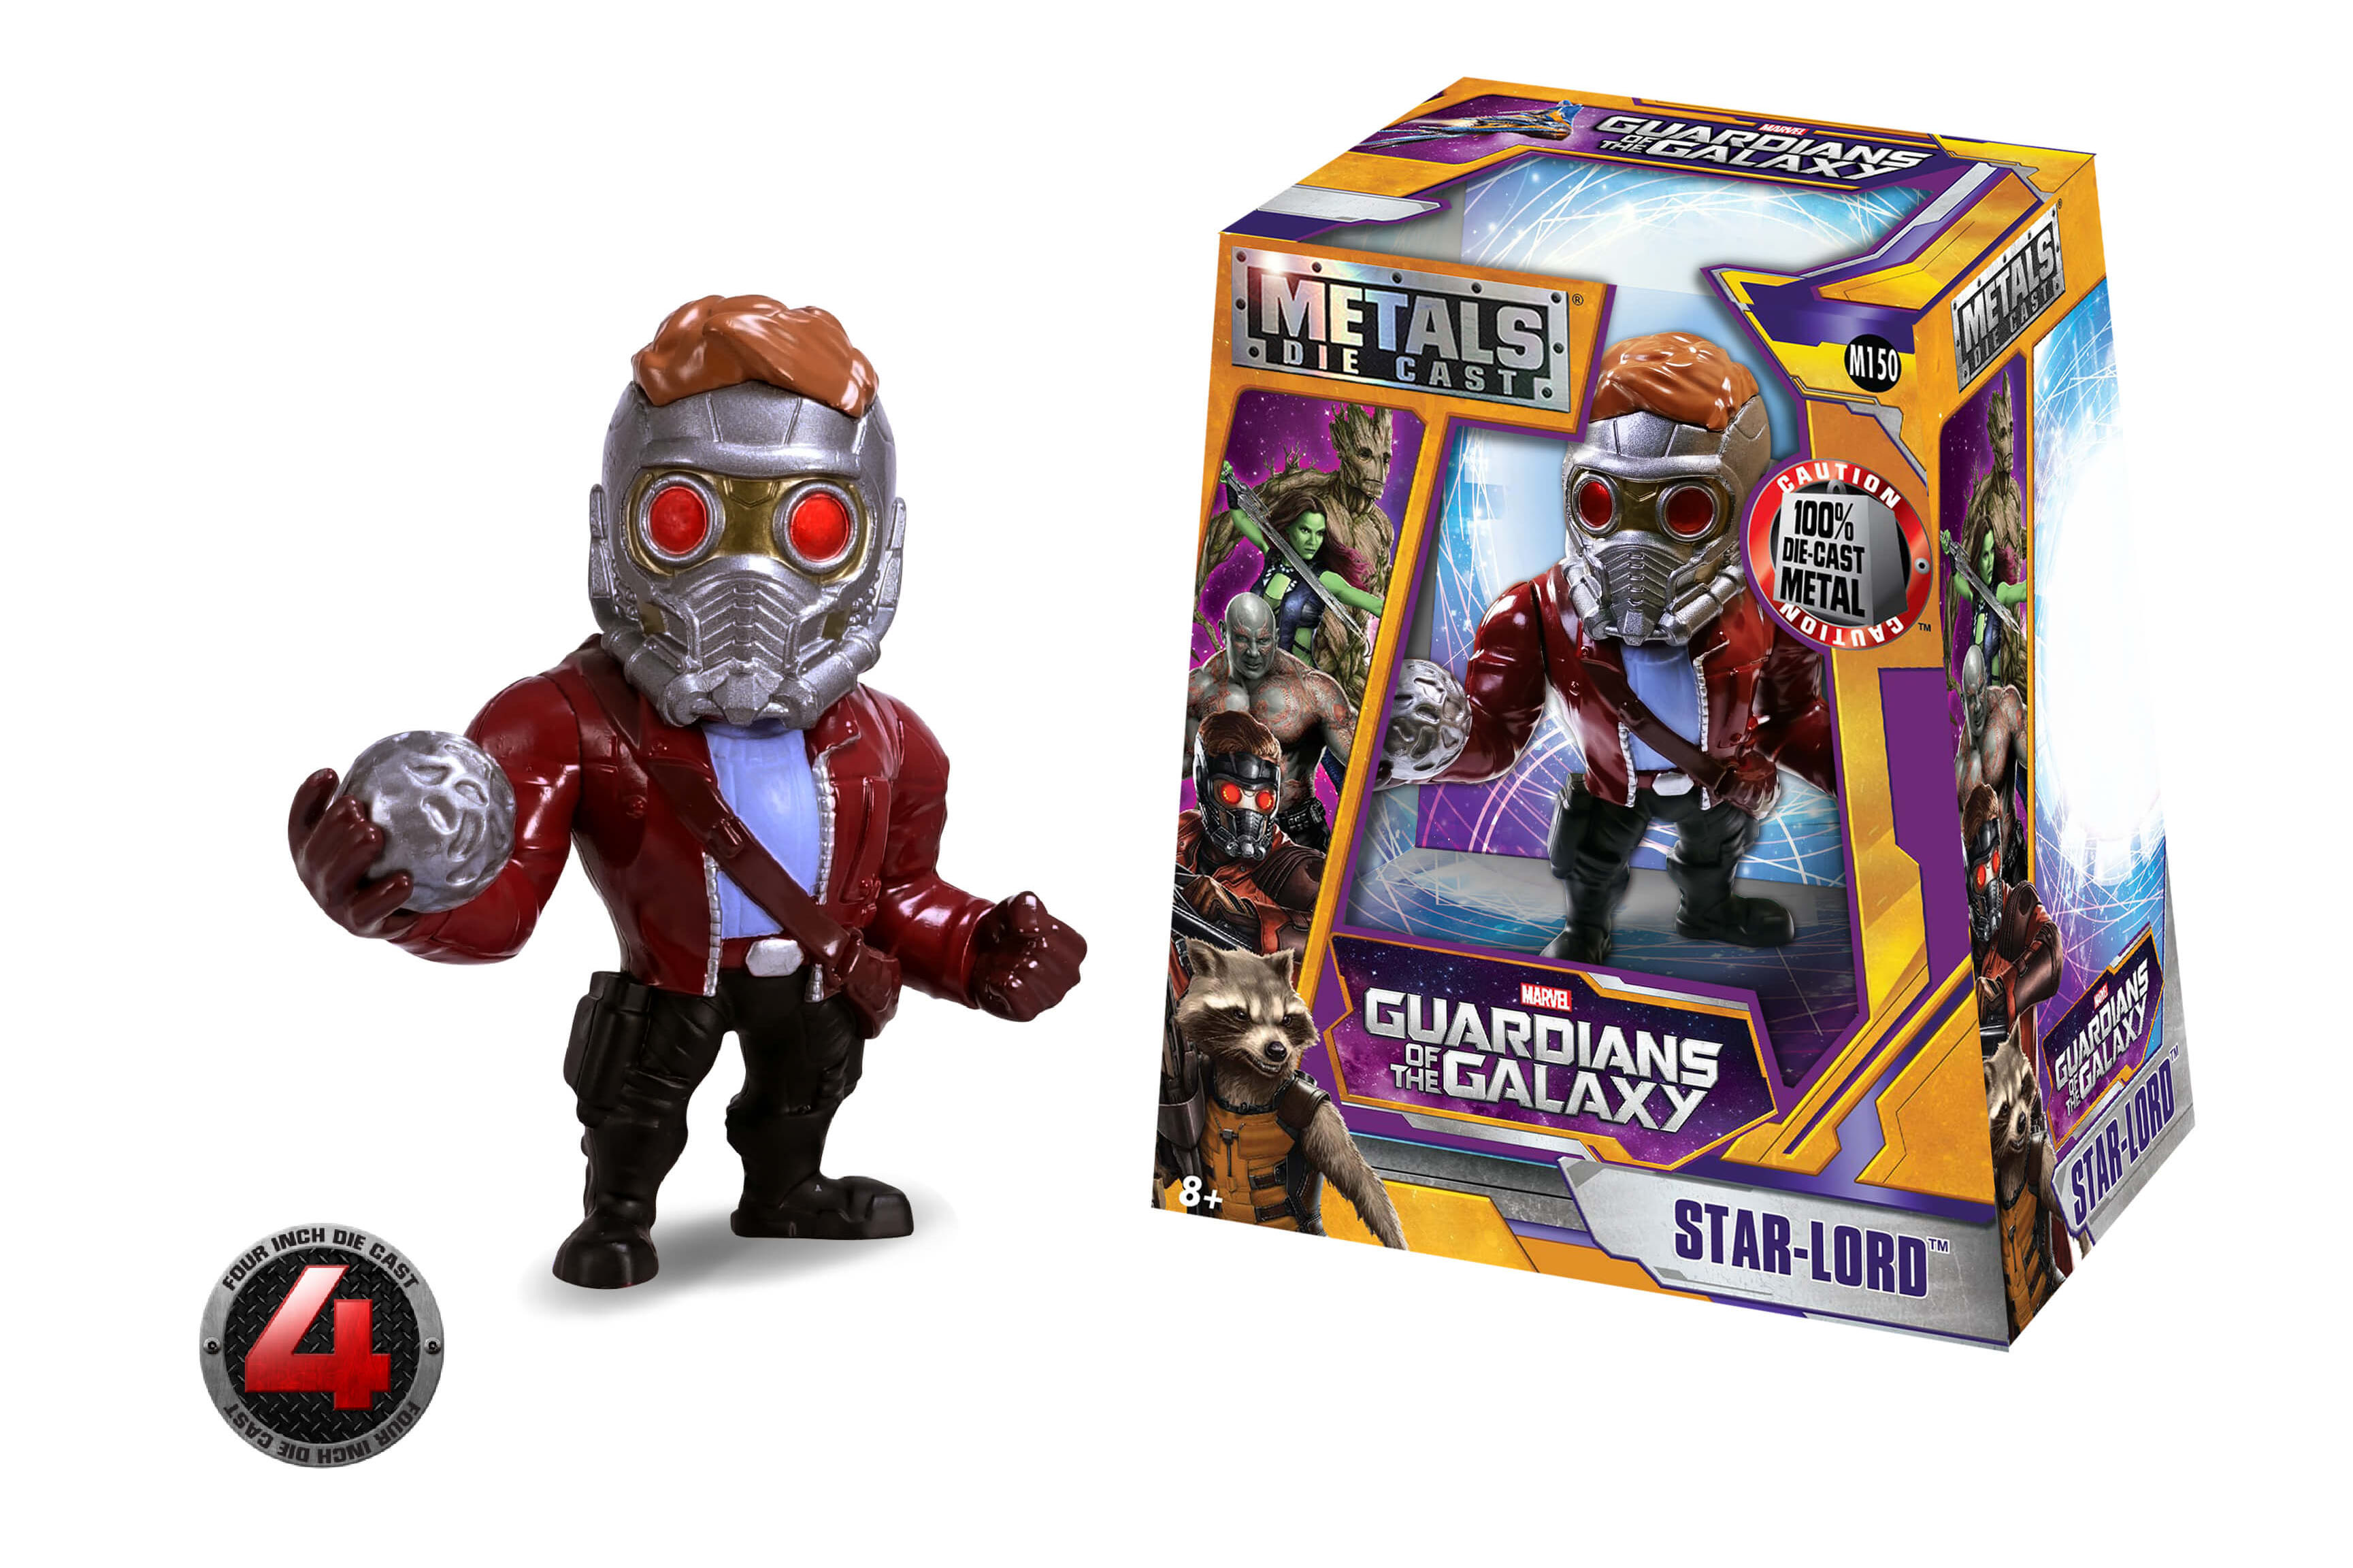 Star lord m150 metals die cast for Galaxy toys